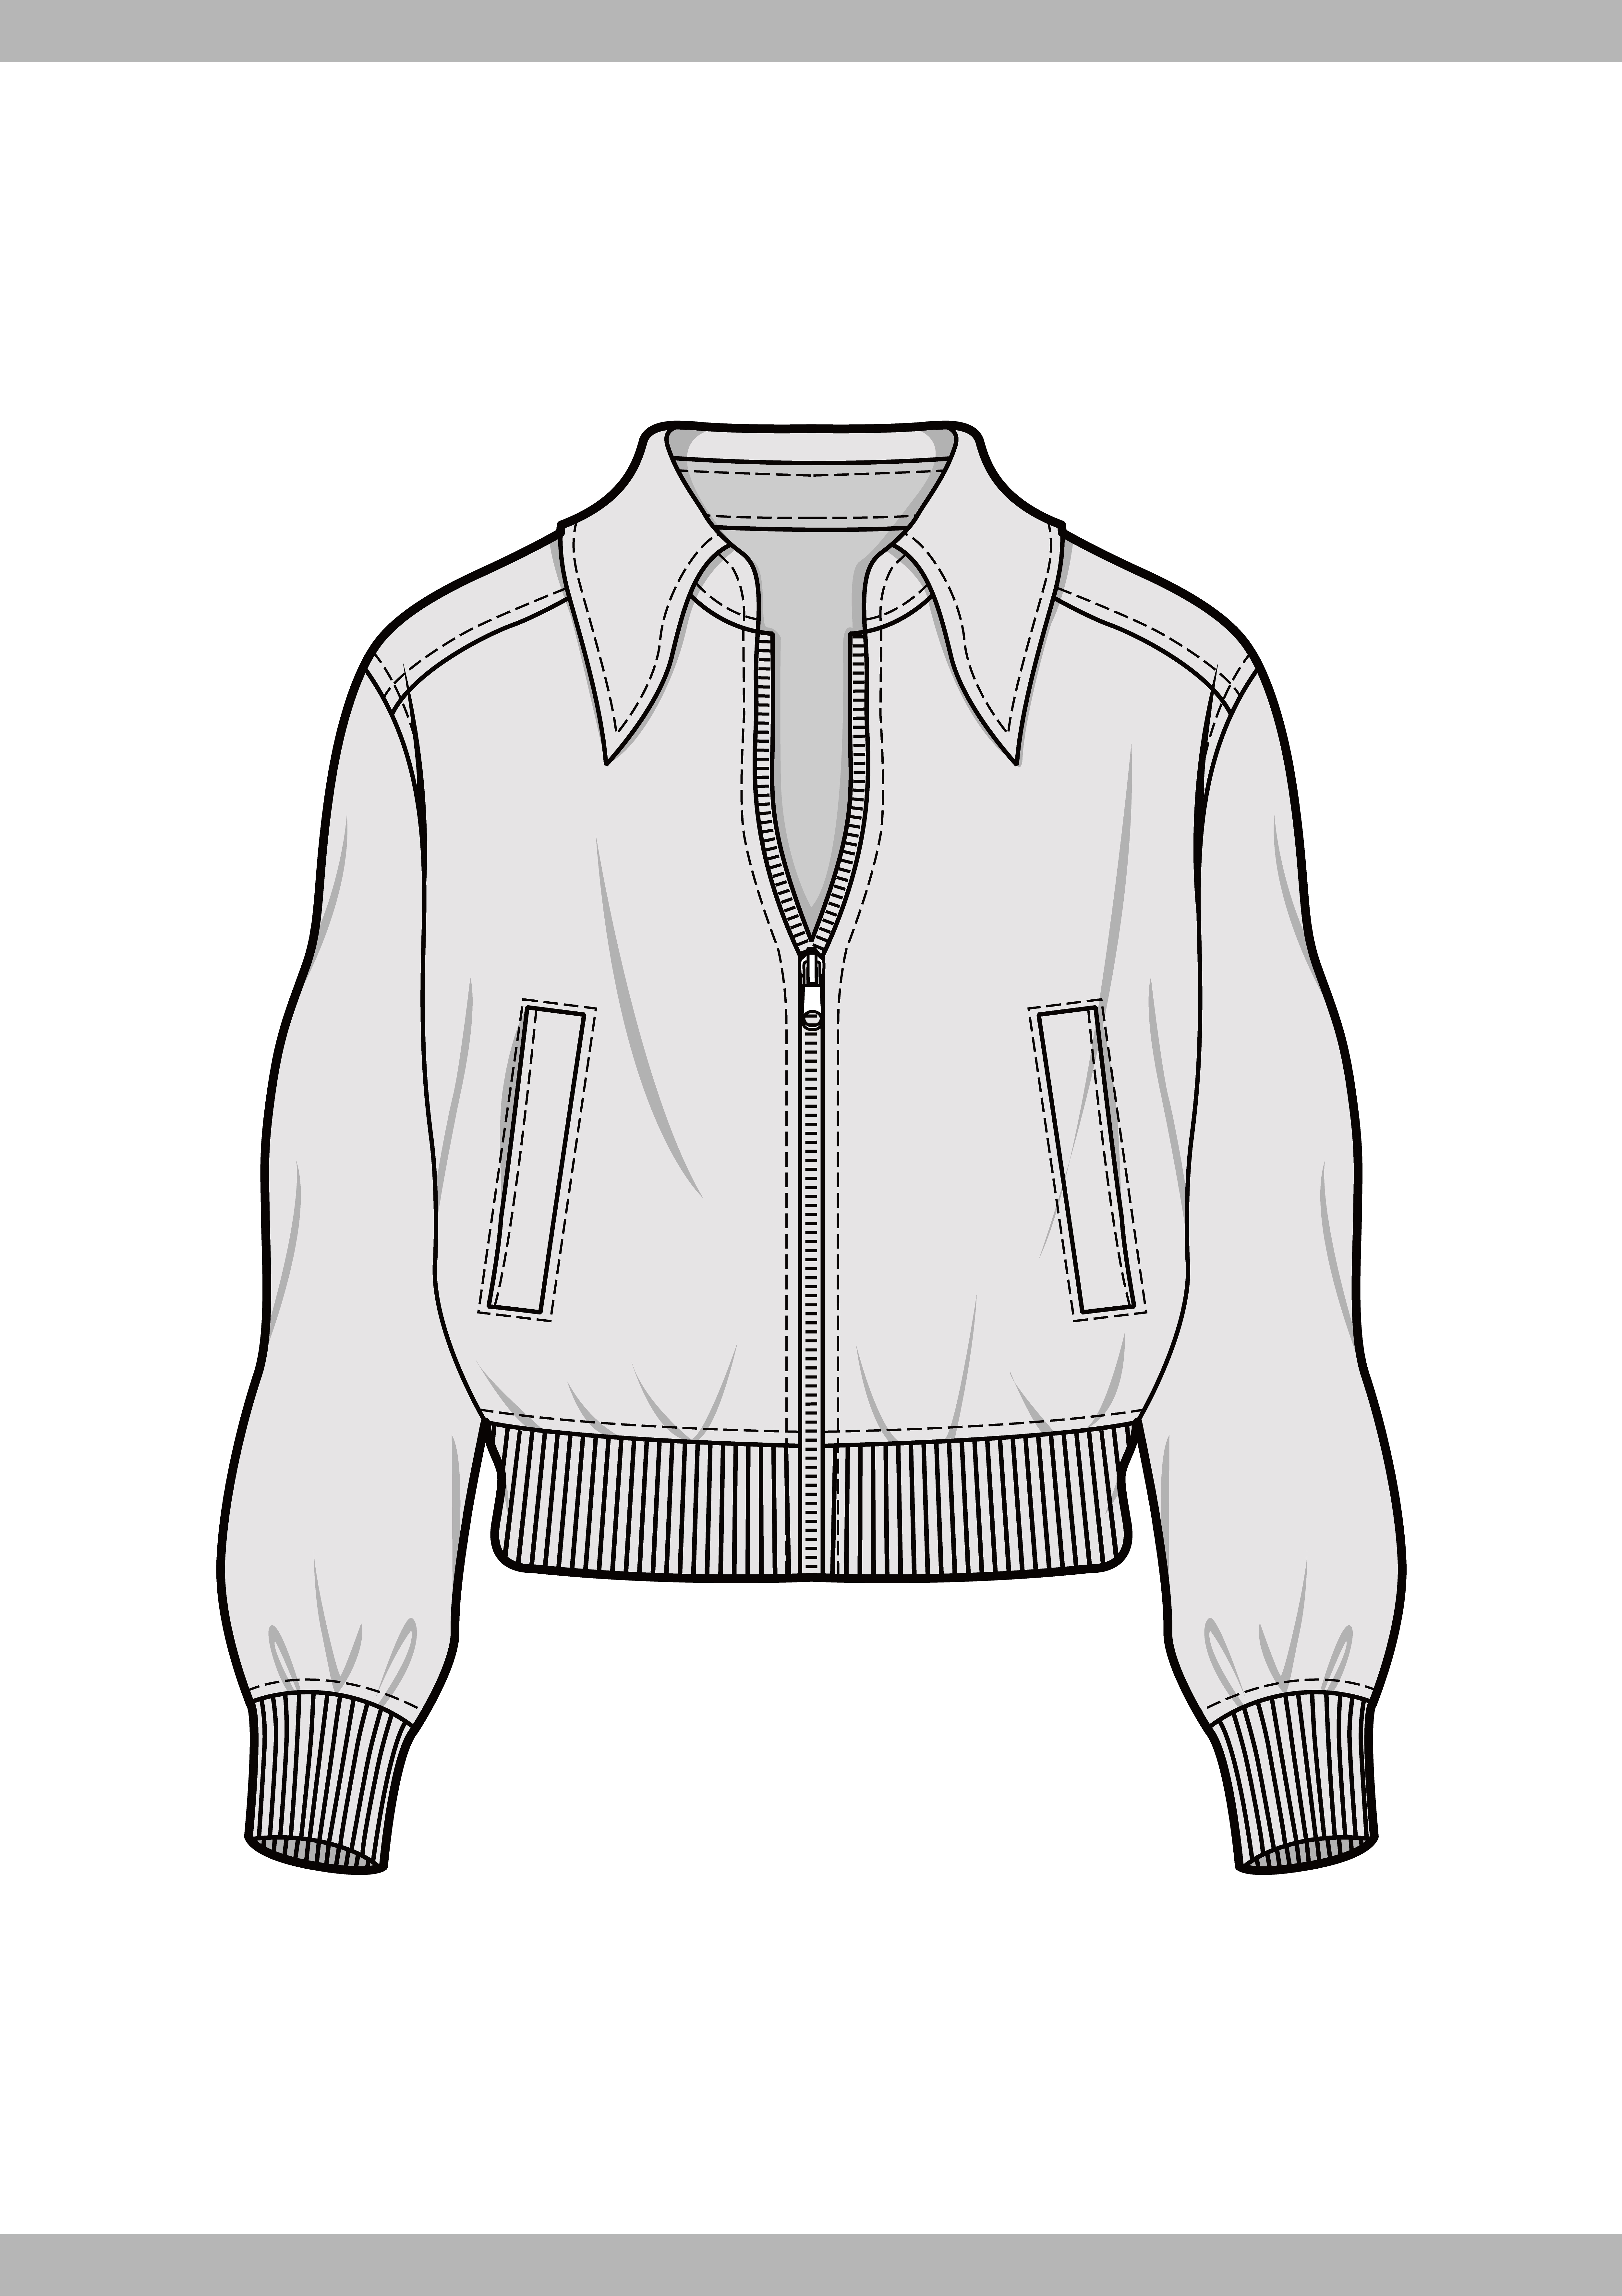 outer jacket fashion flat technical drawing template